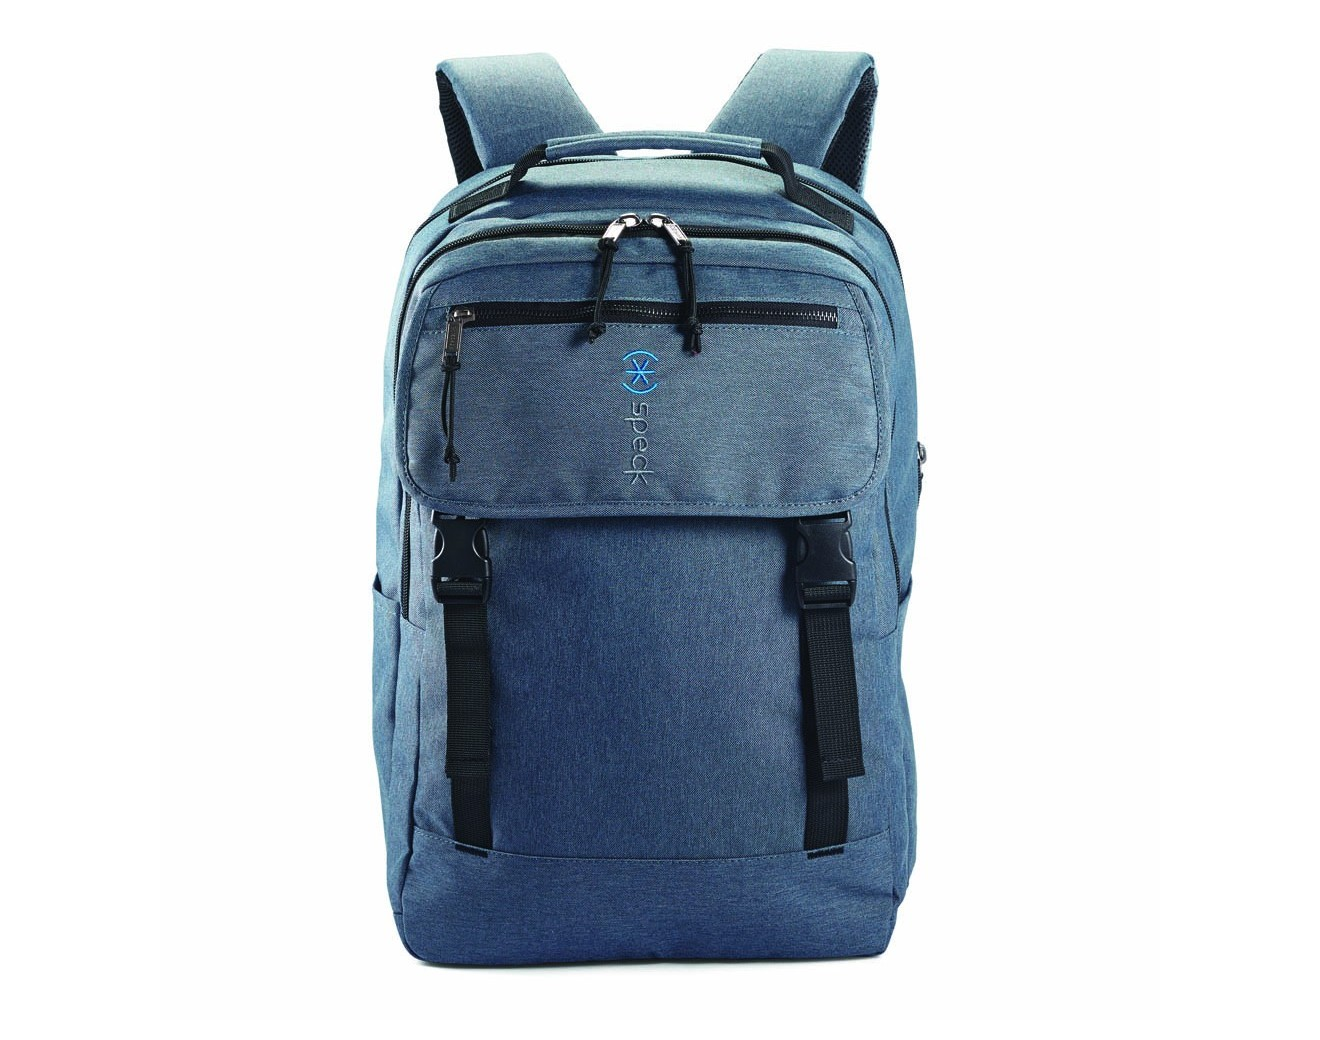 Раница Speck Classic Ruck - Charcoal